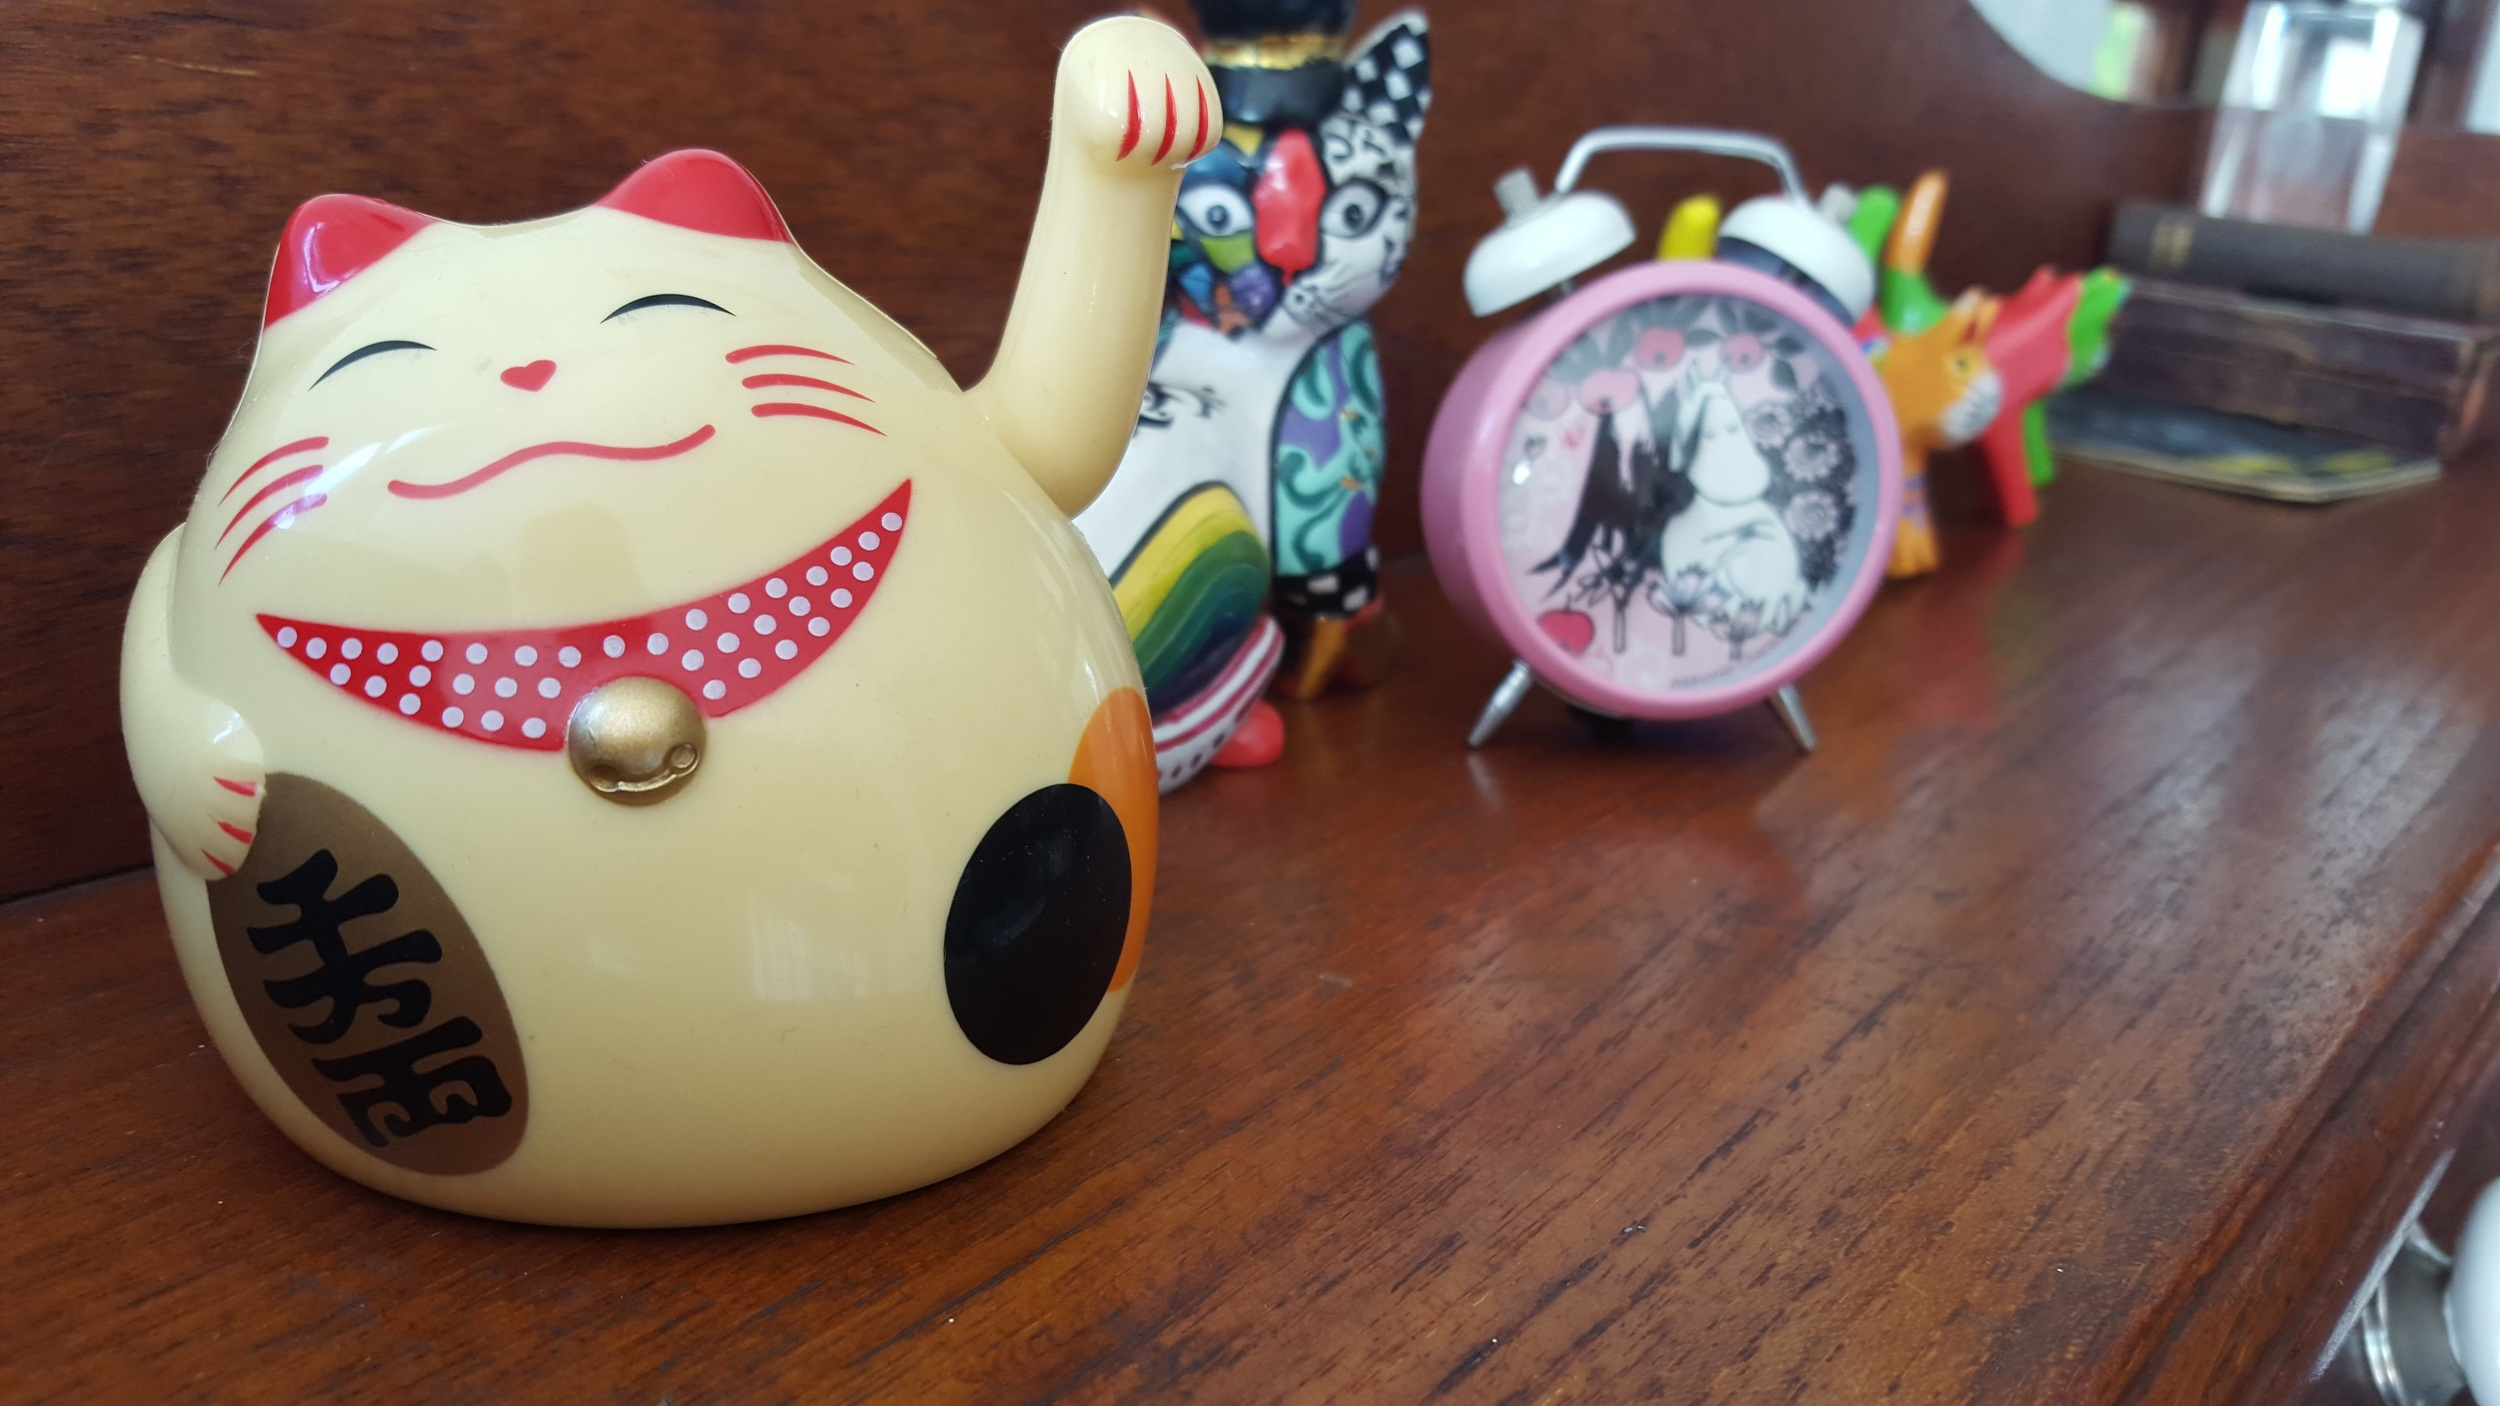 My collection of kitsch cats - each a treasured gift